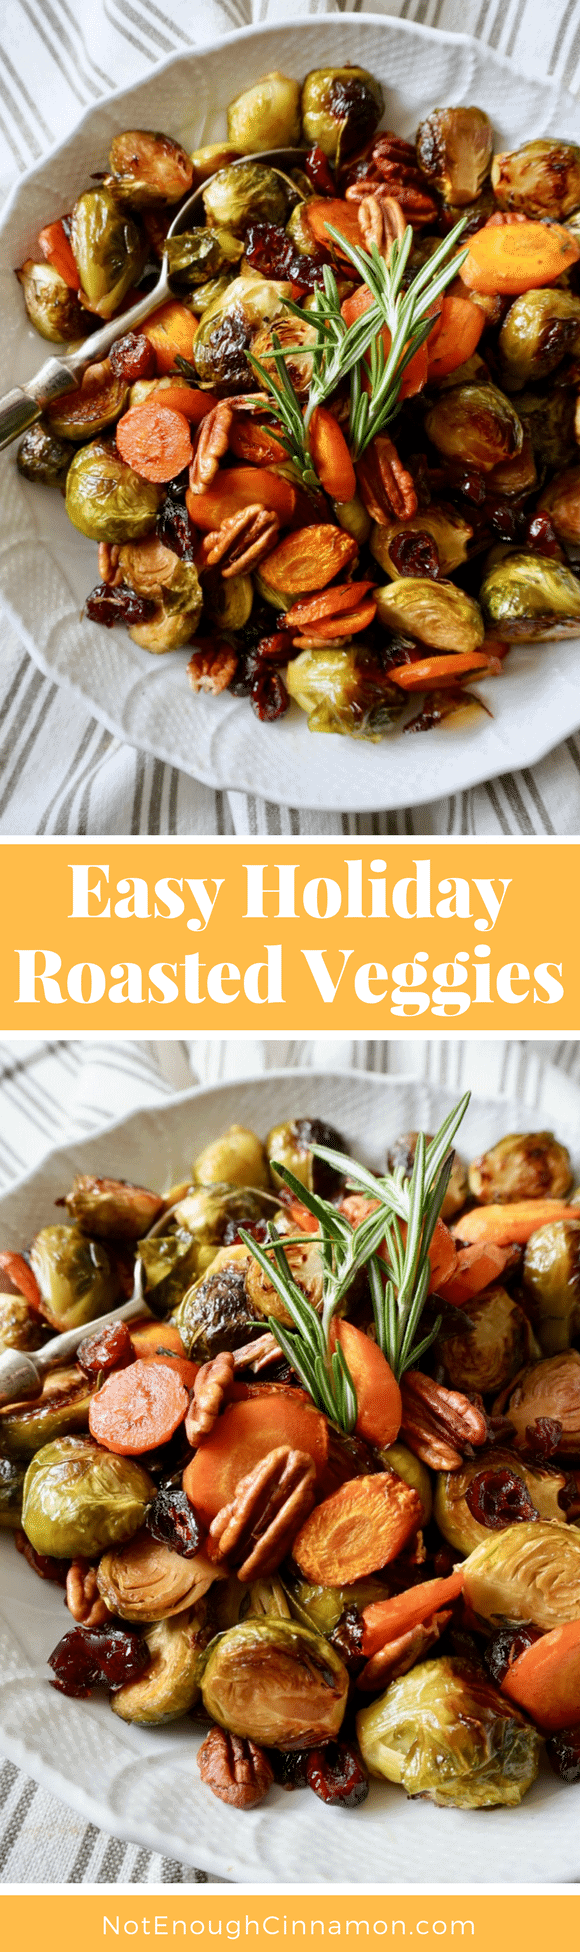 Easy Holiday Roasted Veggies |These easy oven-roasted vegetables with balsamic vinegar and maple syrup are the perfect side dish to serve alongside a Thanksgiving turkey! #healthythanksgiving, #healthyrecipes, #thanksgivingsidedishes, #cleaneatingrecipes